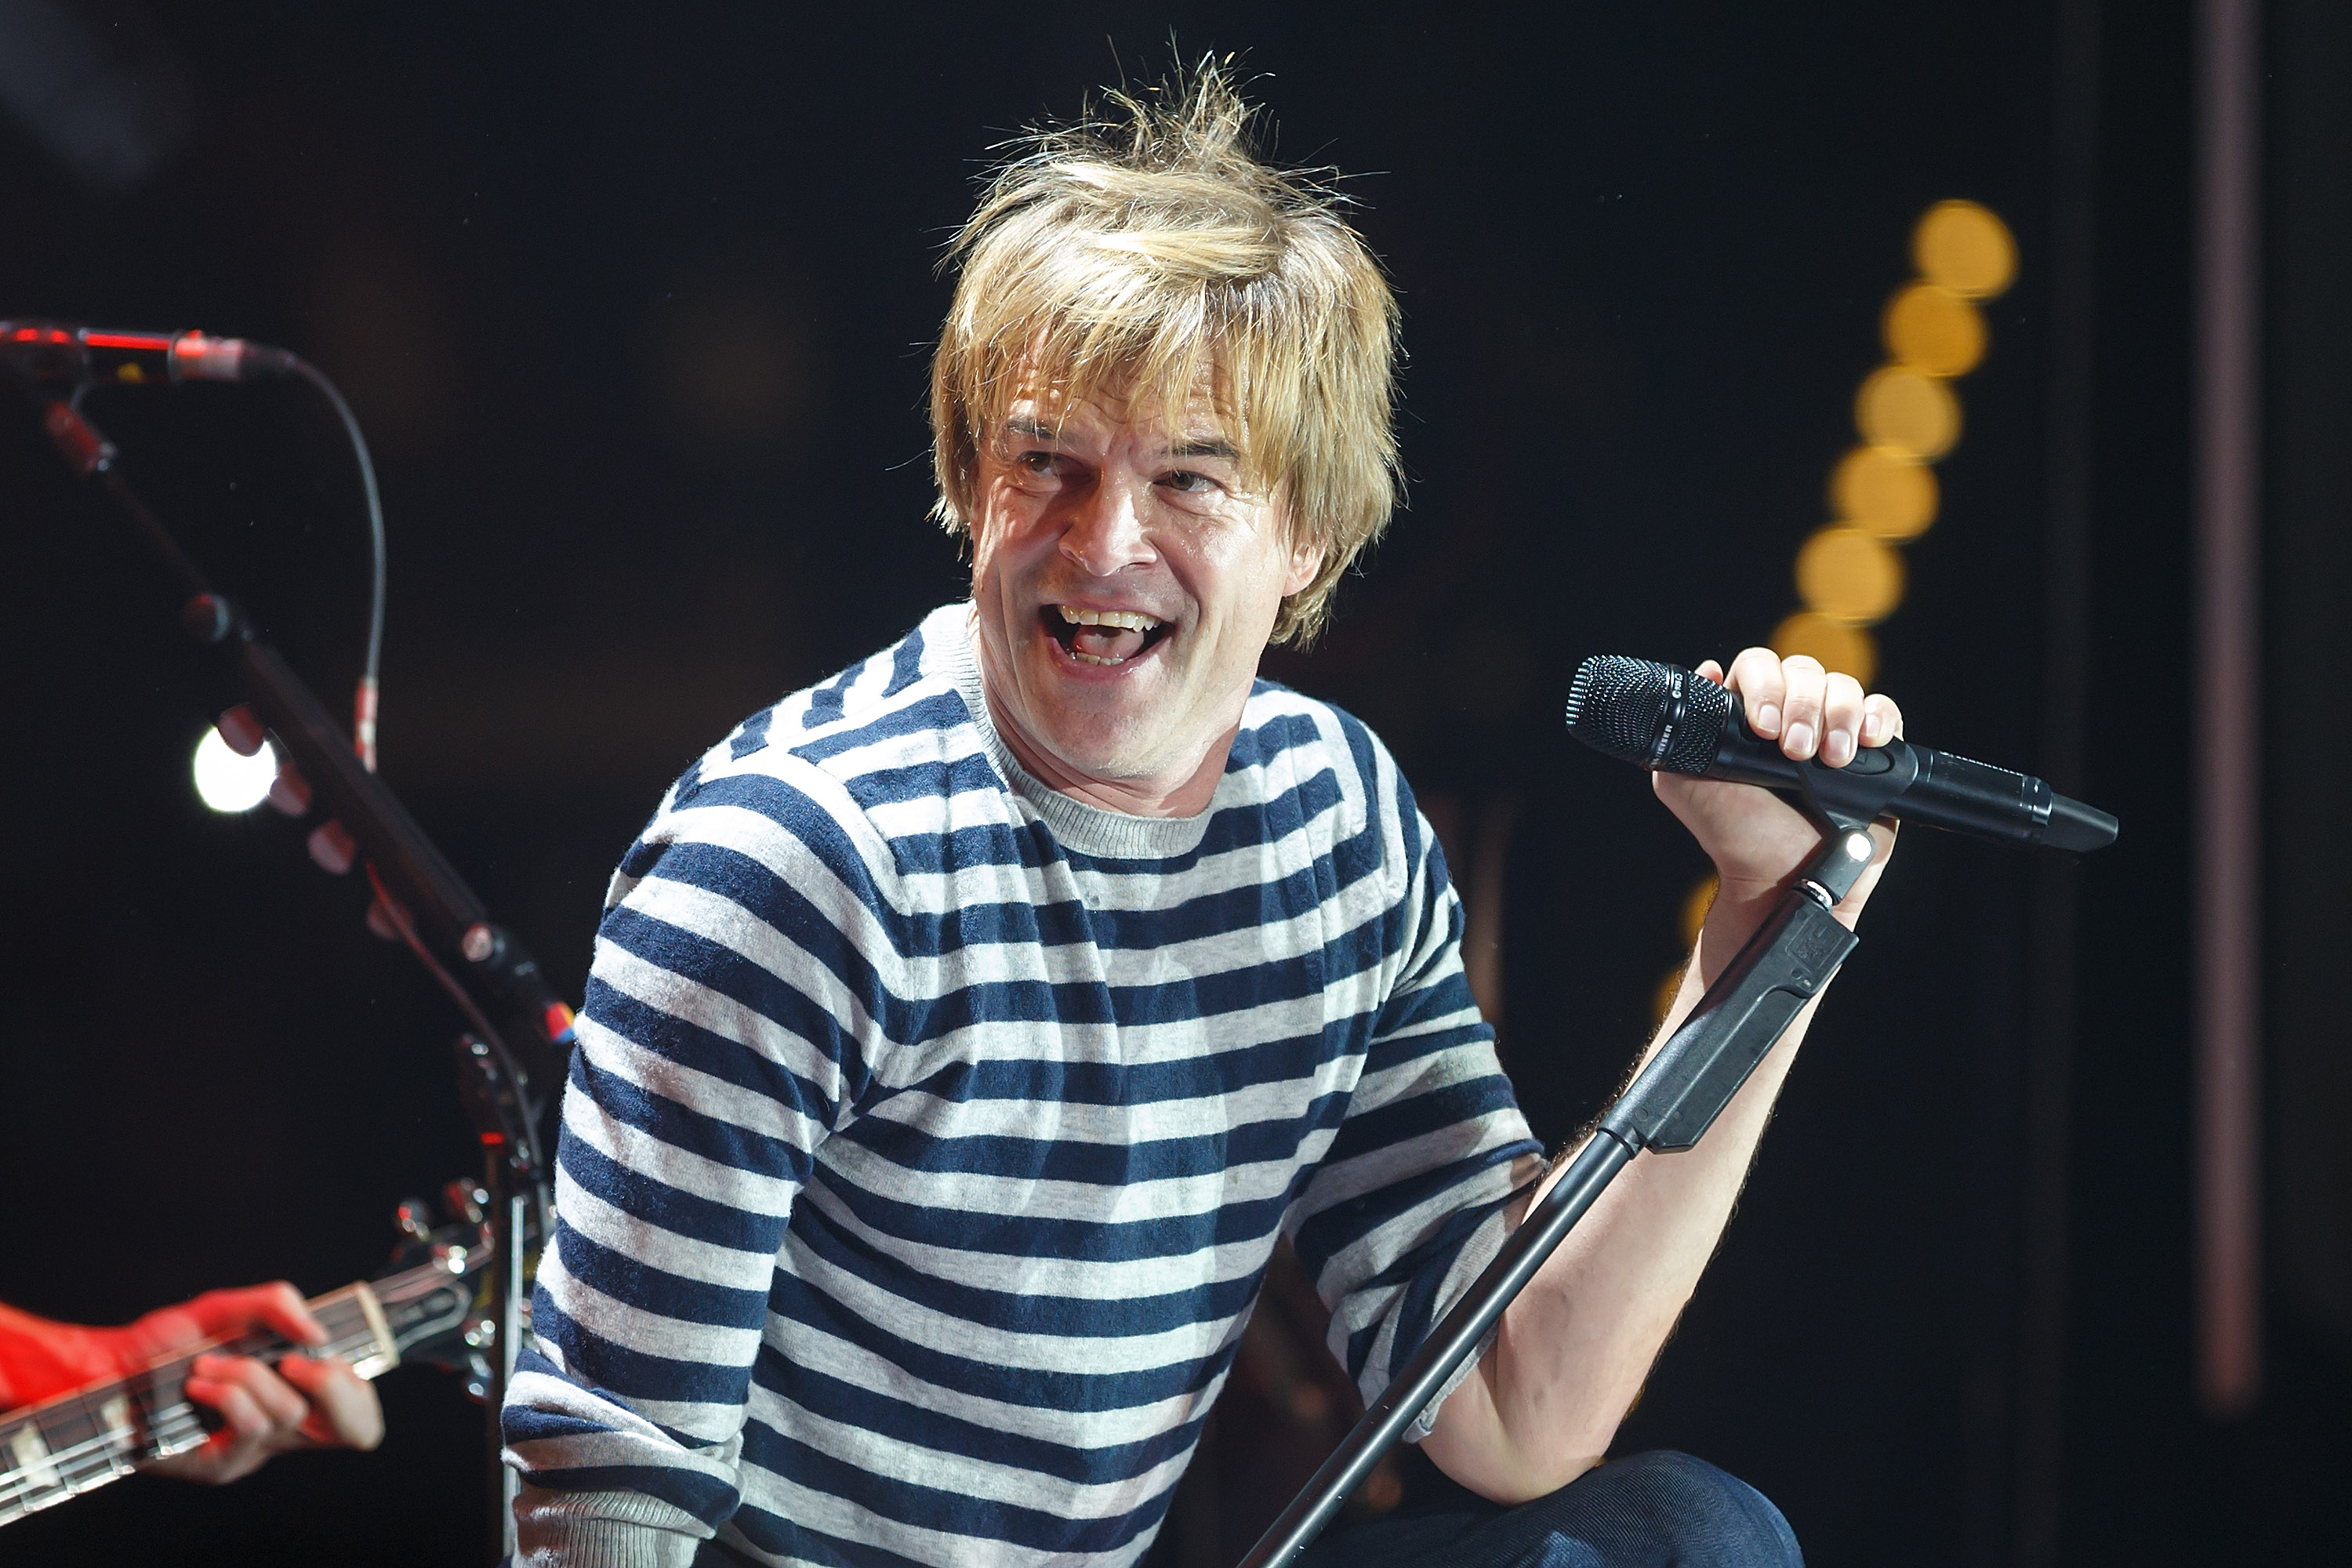 LEIPZIG, GERMANY - NOVEMBER 13: Singer Campino of the German punk band Die Toten Hosen performs live at the Arena on November